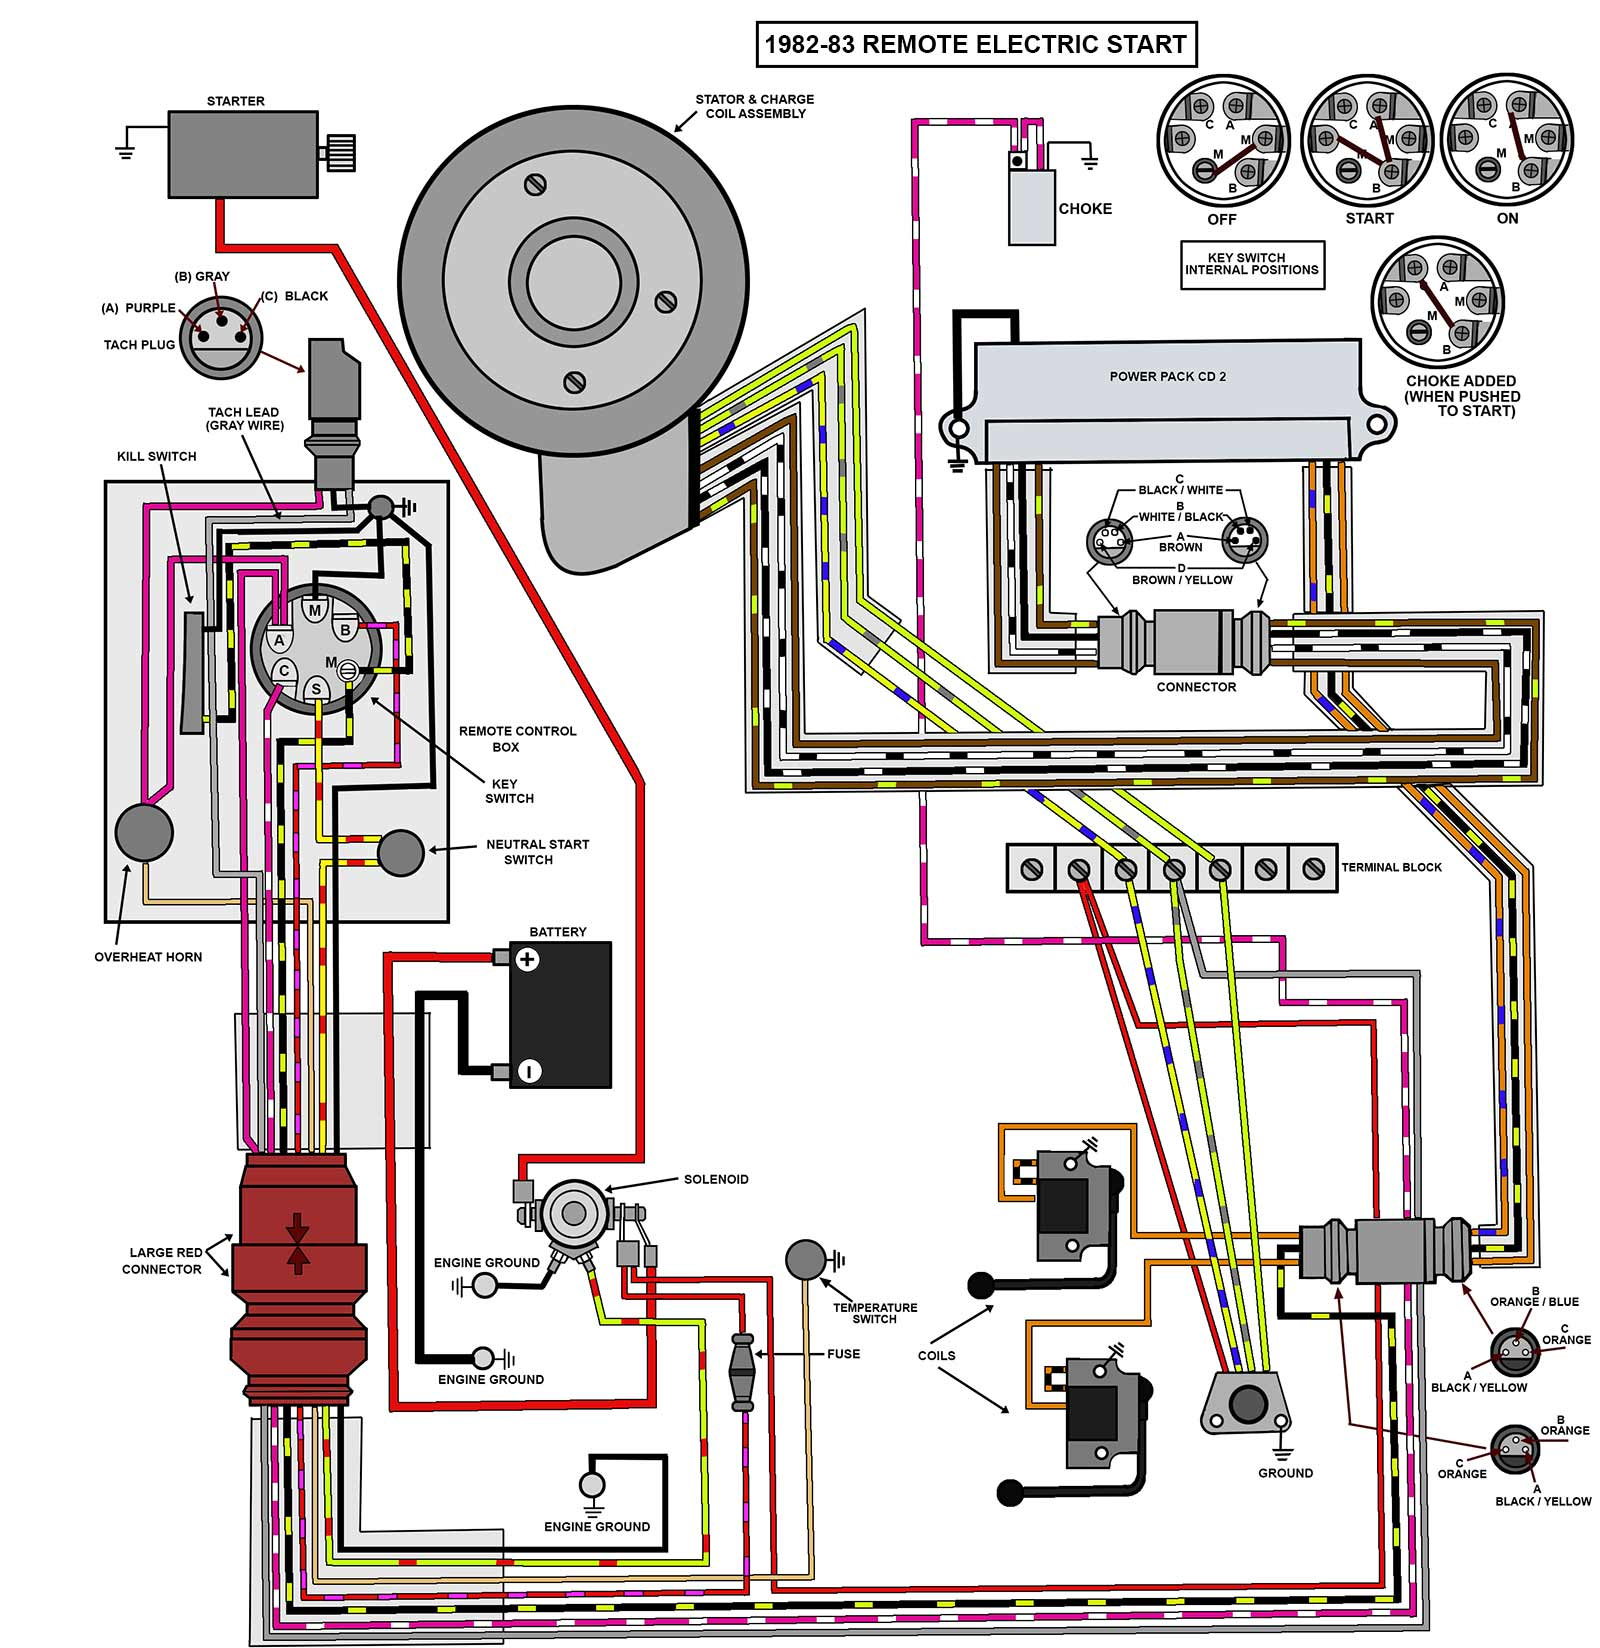 B703138 Nissan Outboard Wiring Diagram | #Digital~Resources# on